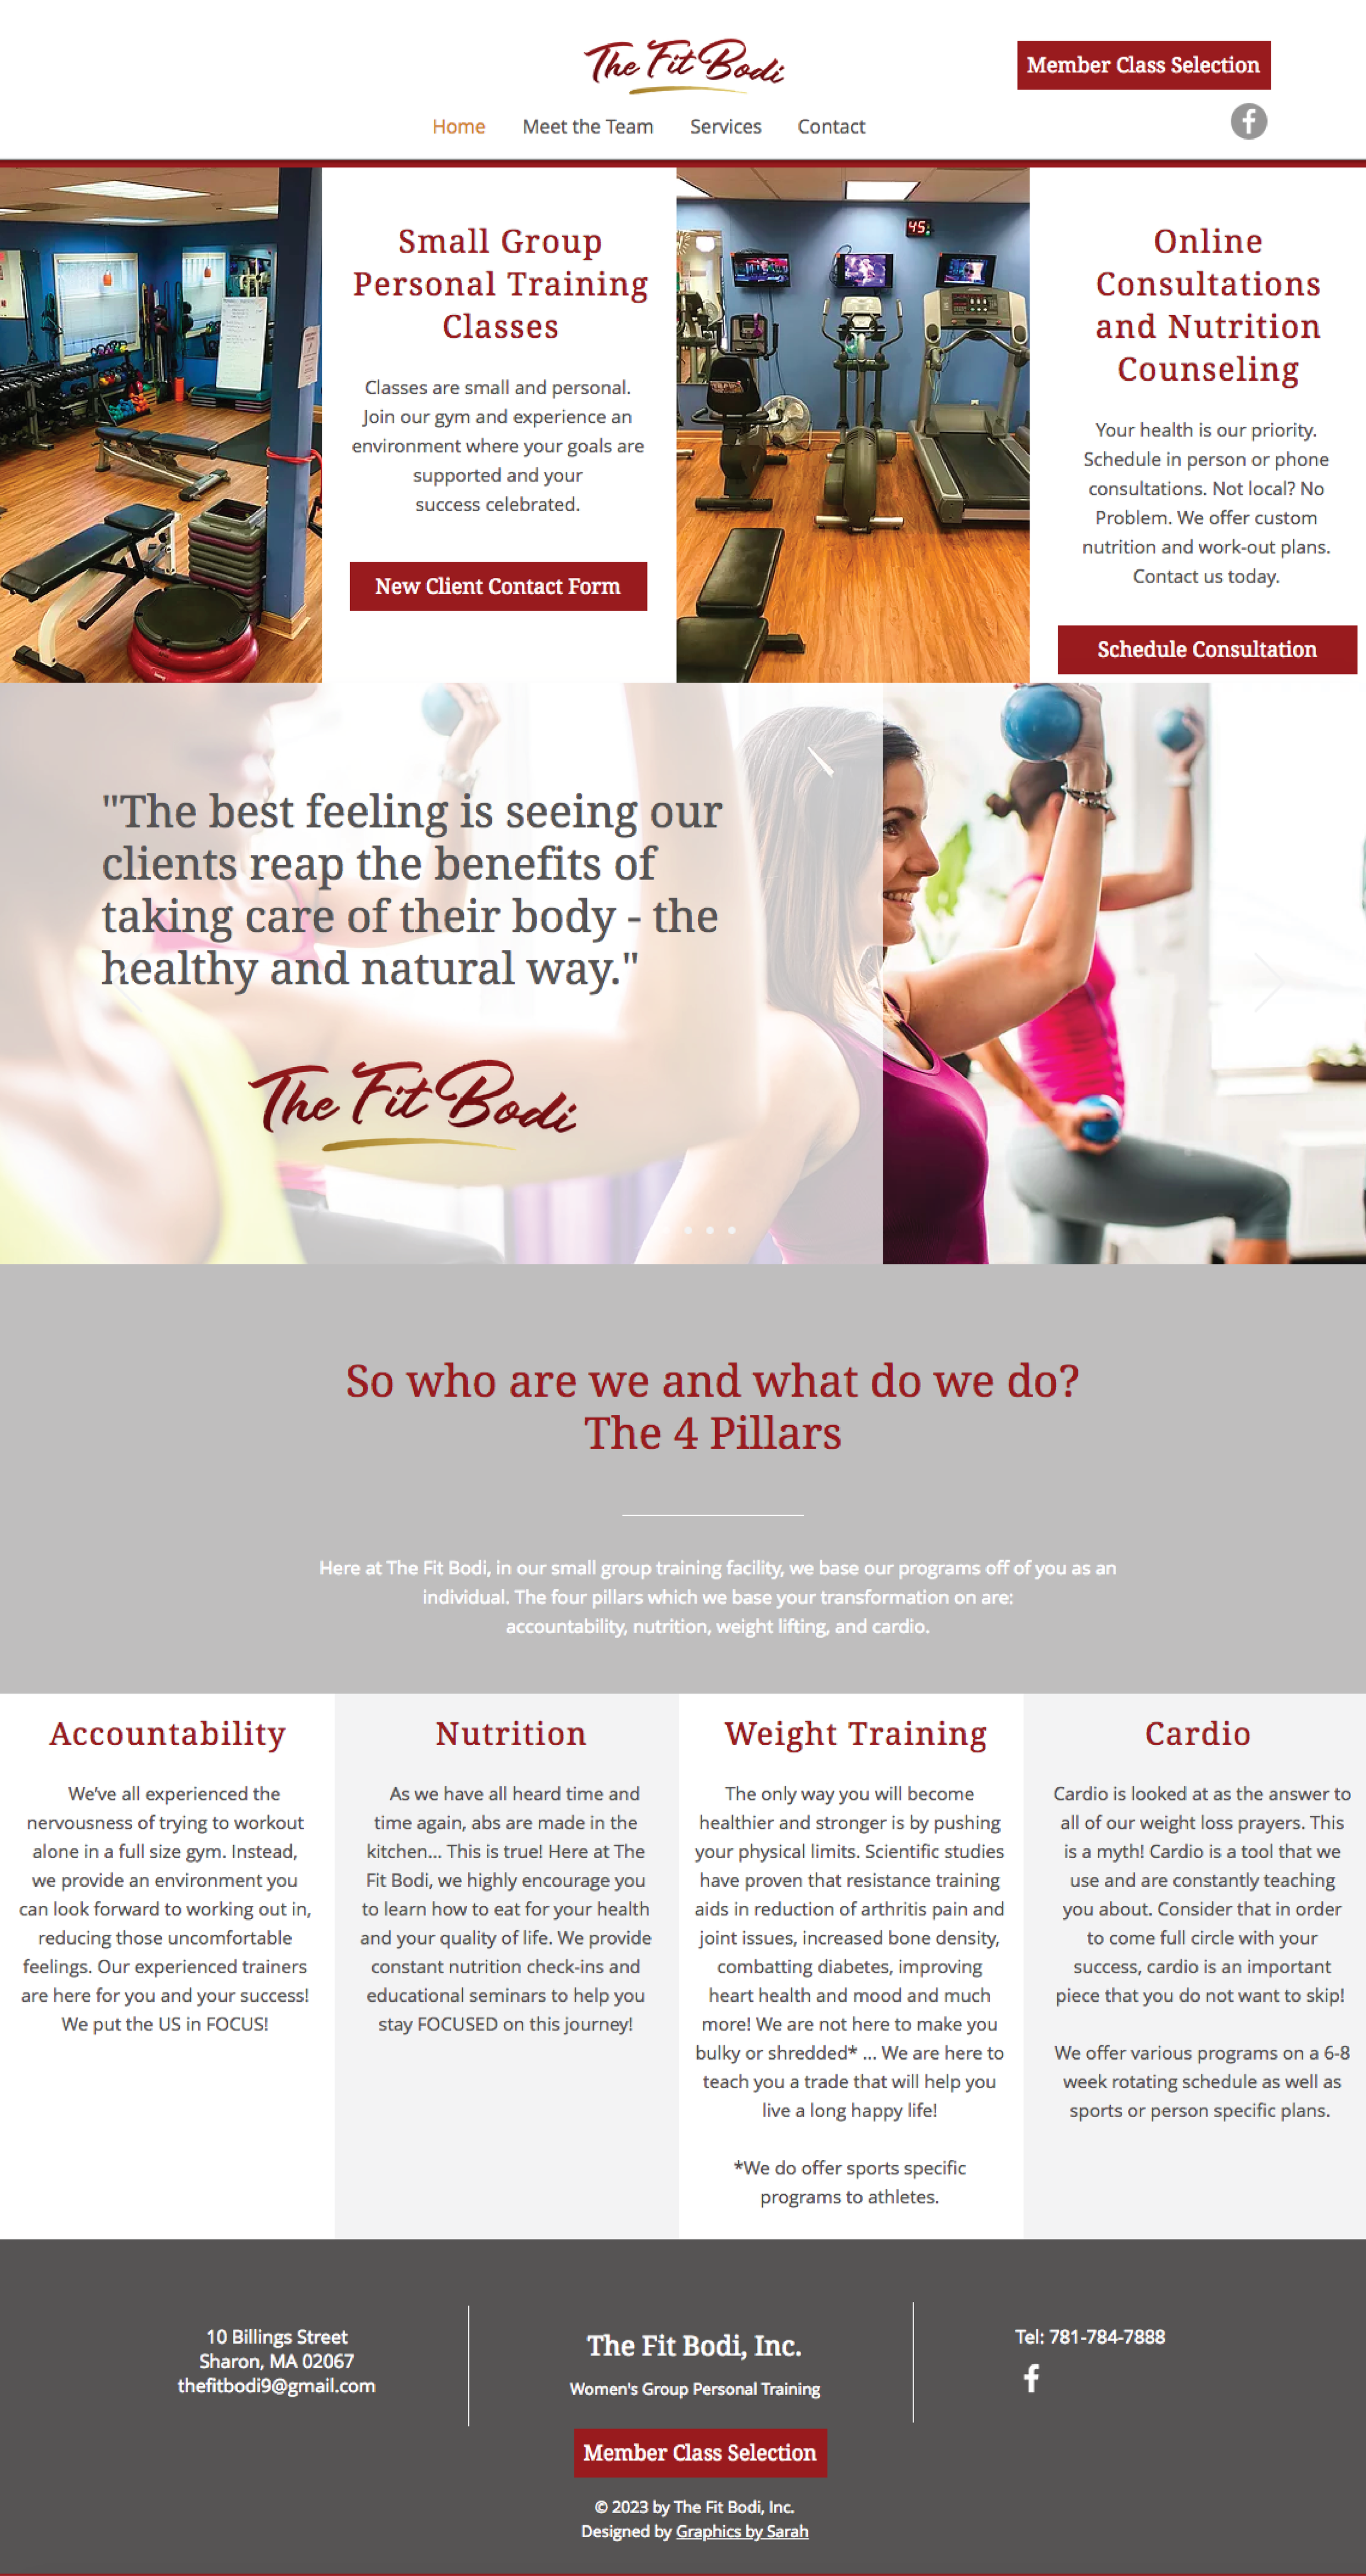 Website Creation - Company: The Fit Bodi Inc.Features: Scrolling Image carousel, mobile friendly site, links to class booking, contact formsLink to site: www.thefitbodisharon.com